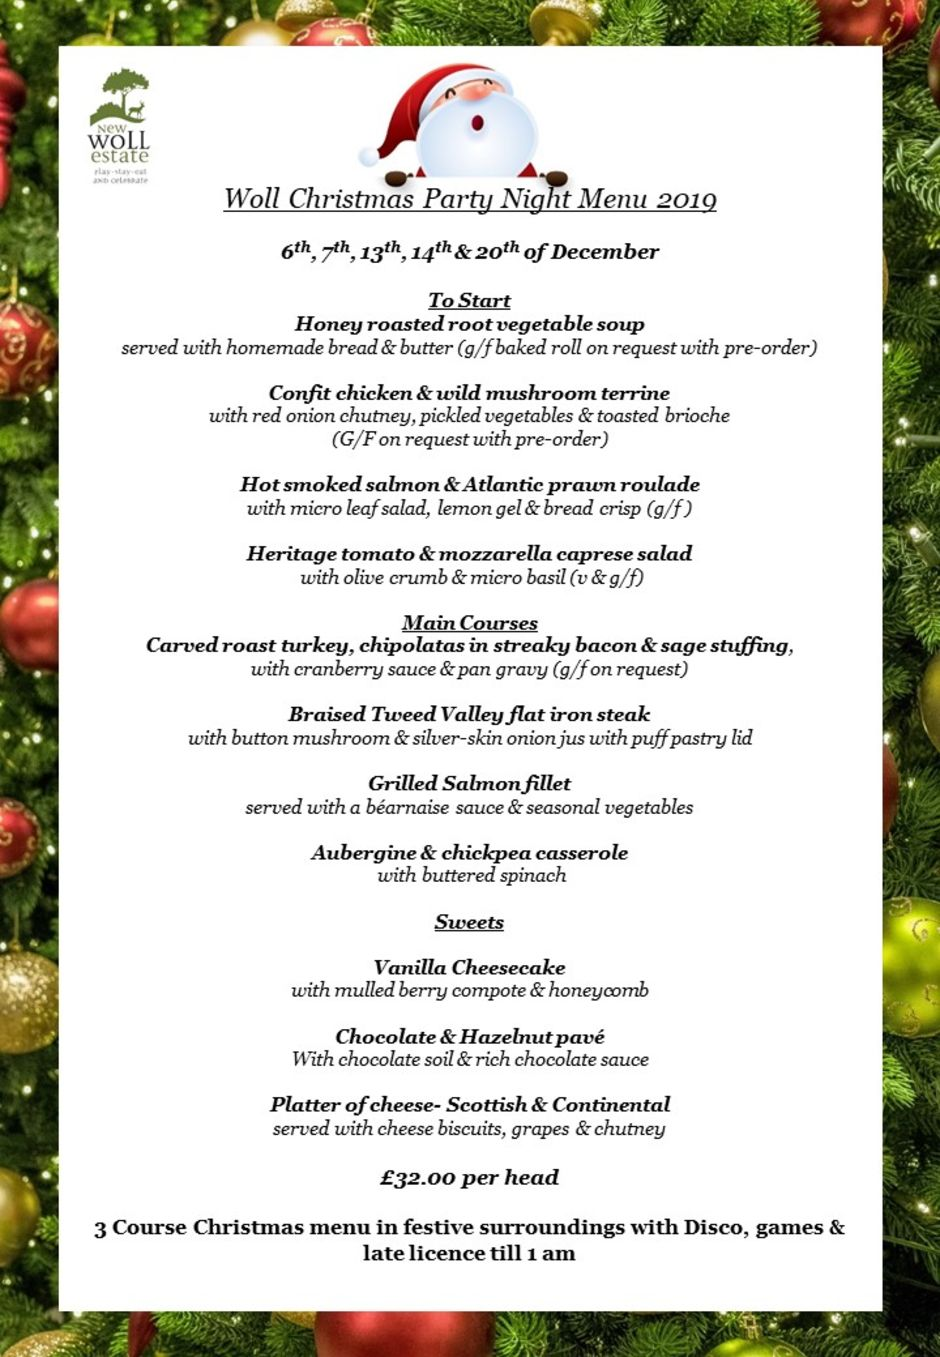 Woll Christmas Party night menu